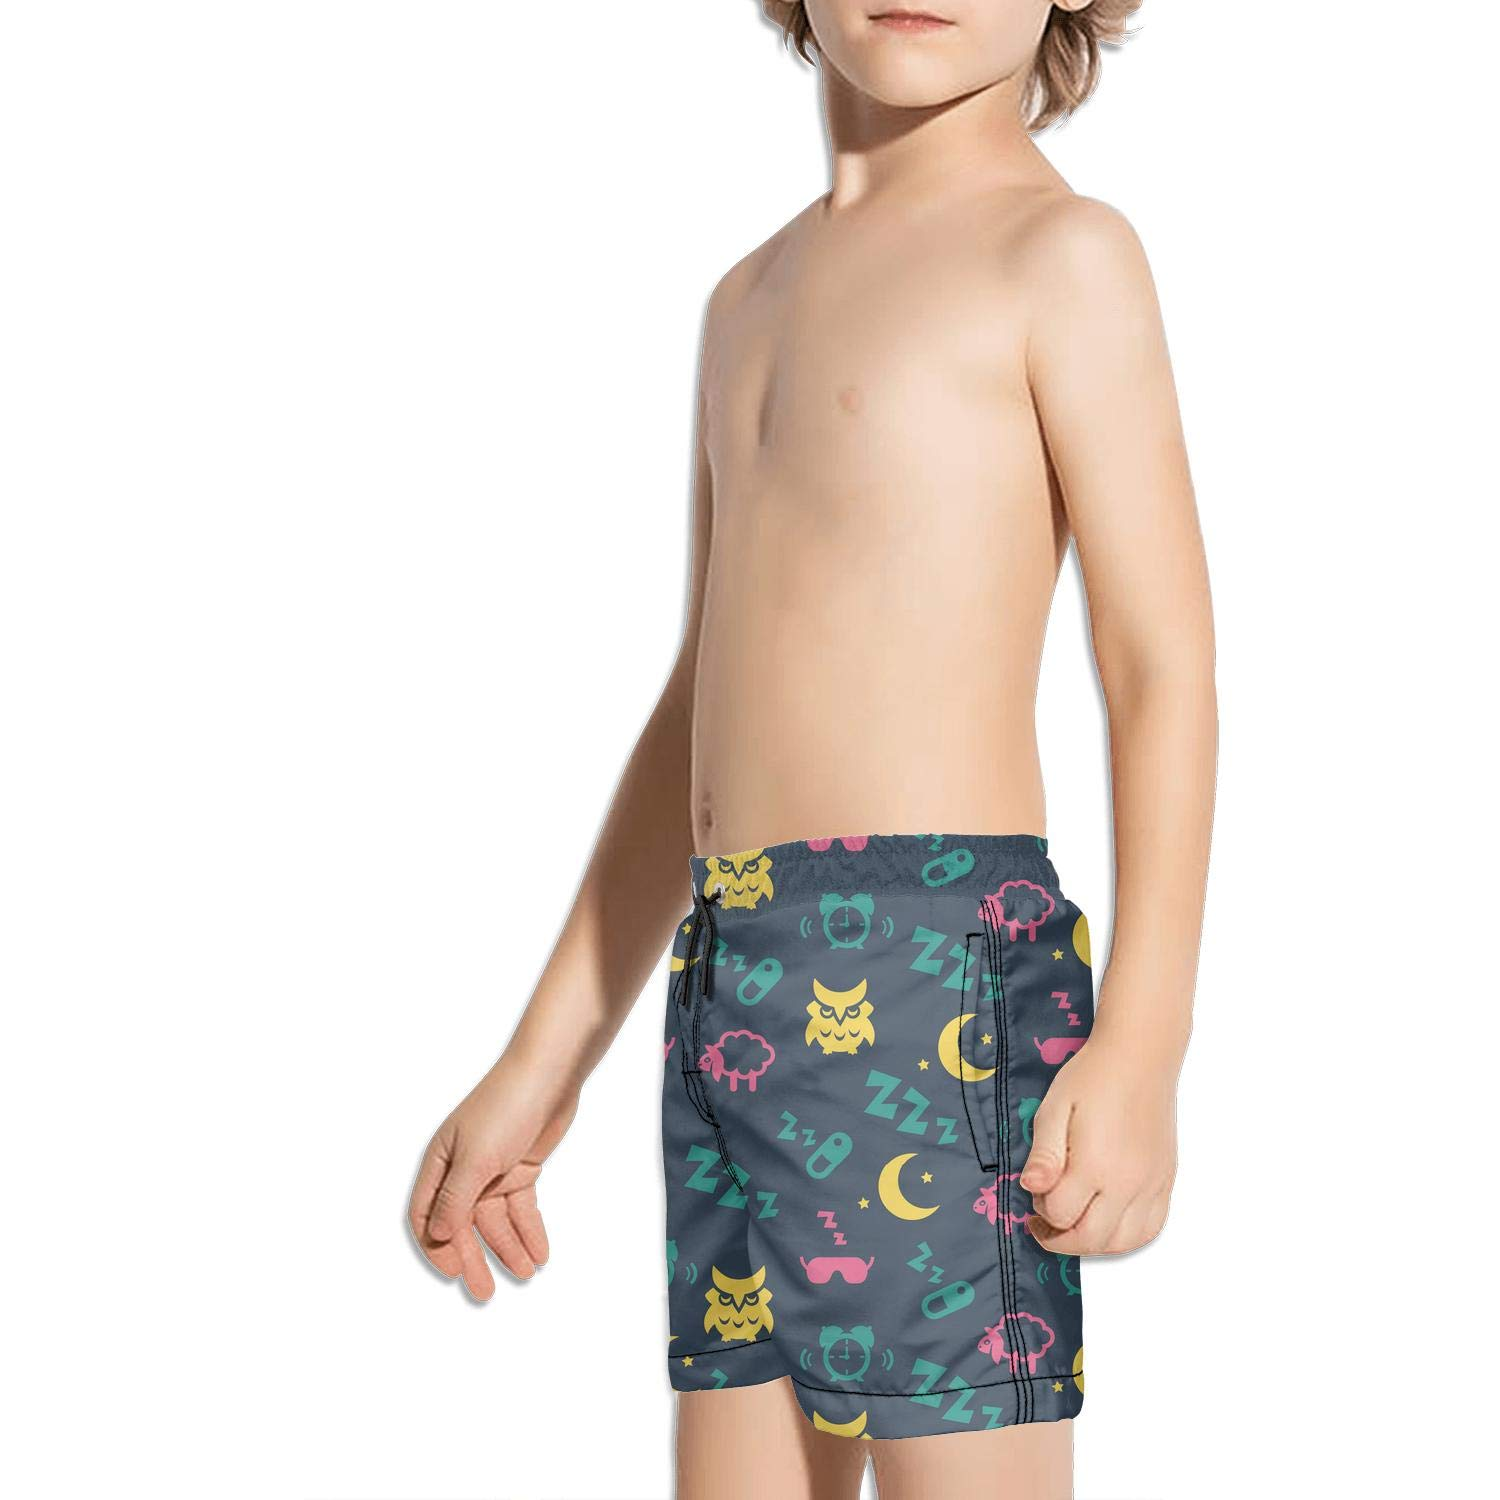 Boys Swim Trunks Pastel Beige and Brown Cute owl Quick Dry Bathing Suits Beach Board Shorts